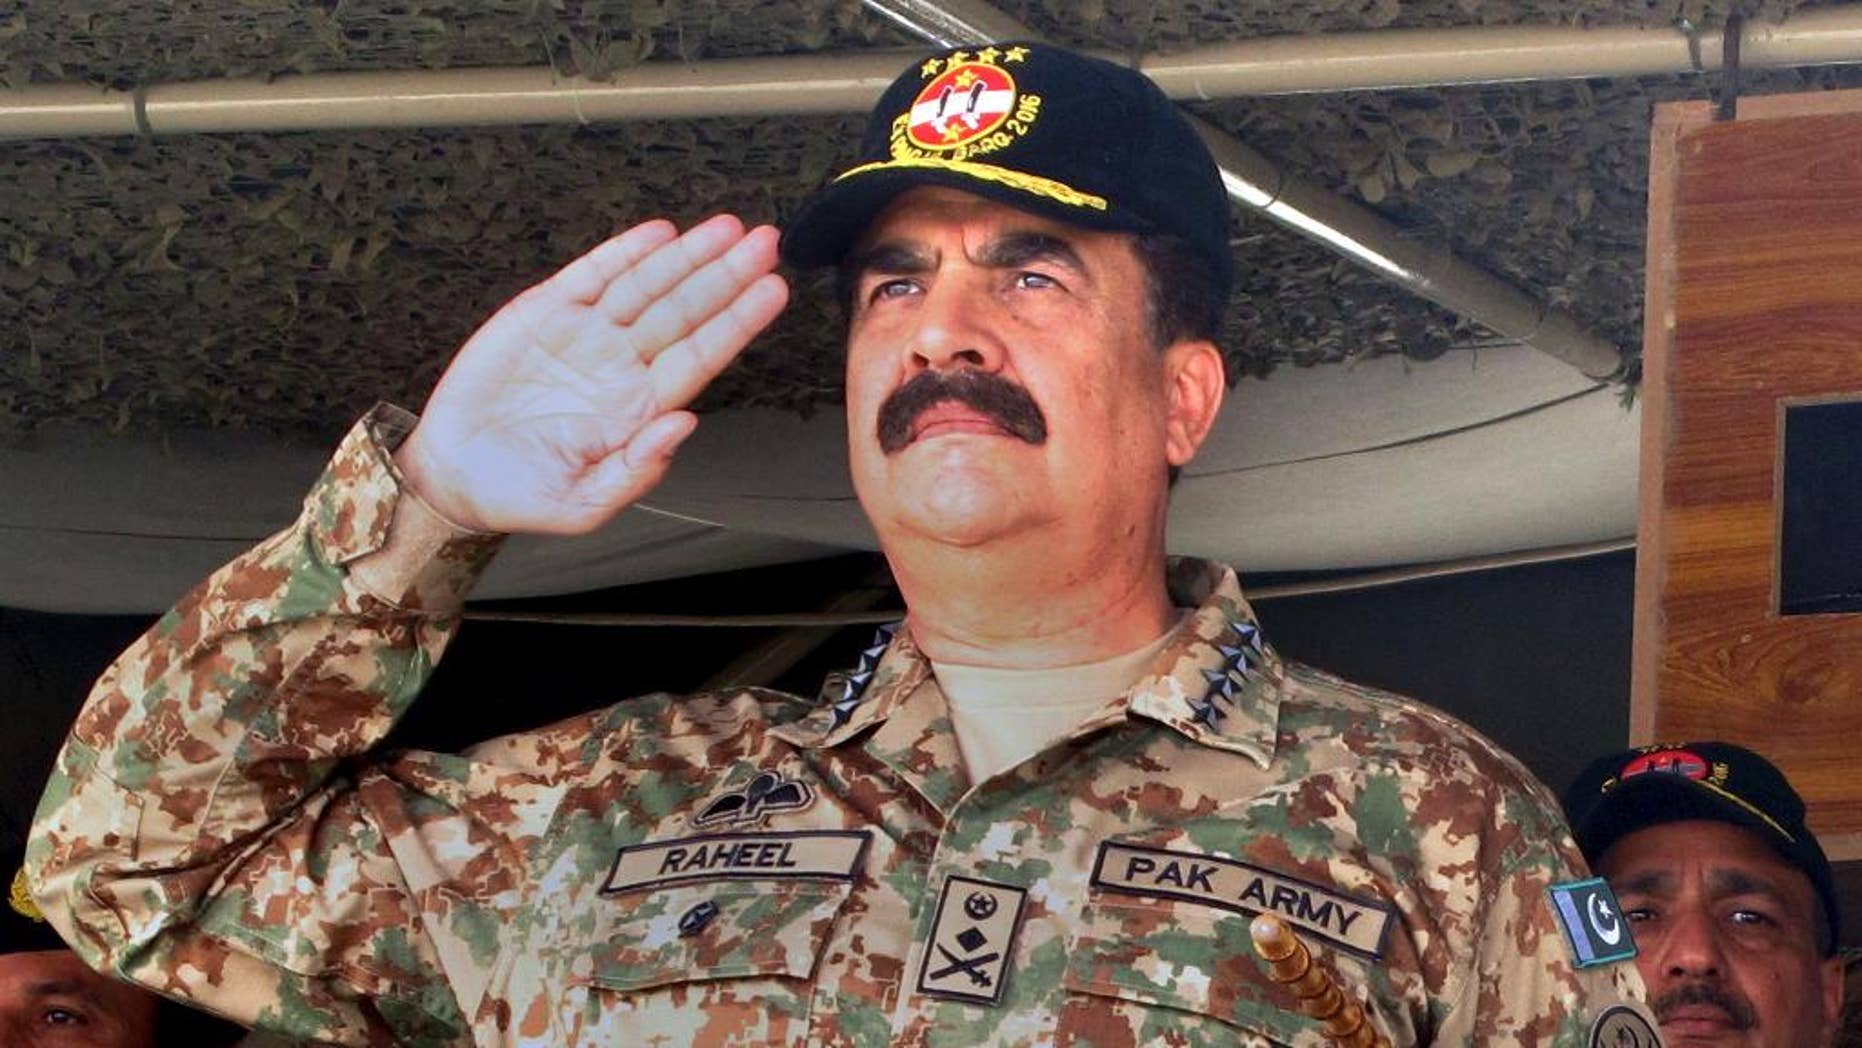 In this Wednesday, Nov. 16, 2016 photo, Pakistan army chief General. Raheel Sharif salutes during a military exercise in Khairpur Tamiwali, Pakistan. Pakistani army says on Monday, Nov. 21, 2016 its chief Sharif has started his farewell visits a week before his due retirement. Pakistani army's spokesman Lt. Gen. Asim Bajwa's Monday announcement has faded away debates about a possible extension in the three year term of the army chief, who is due to retire on Nov 29. (AP Photo/Muhammad Yousuf)